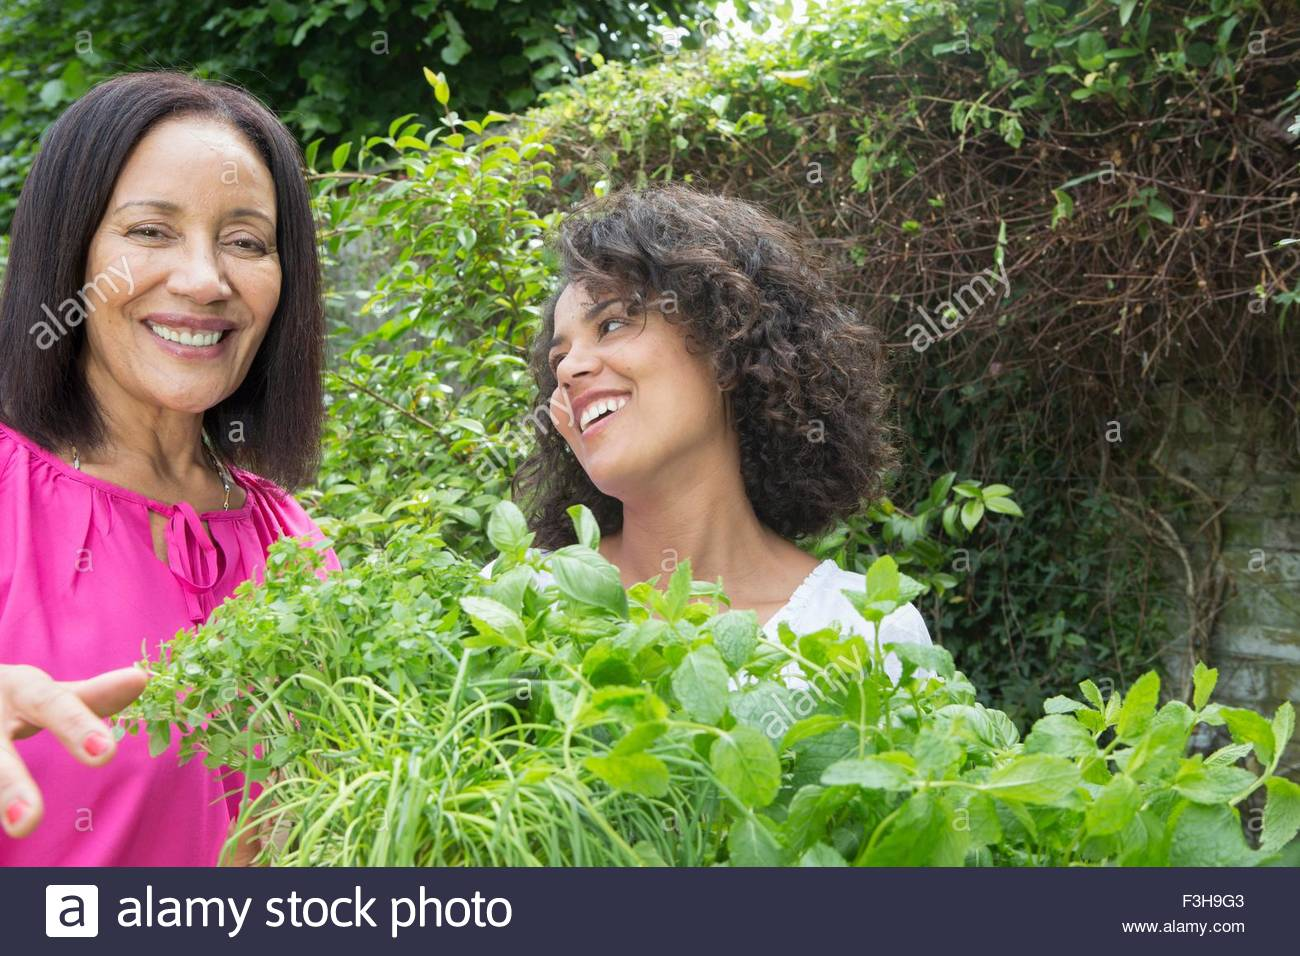 Mother and grown daughter picking herbs in garden - Stock Image